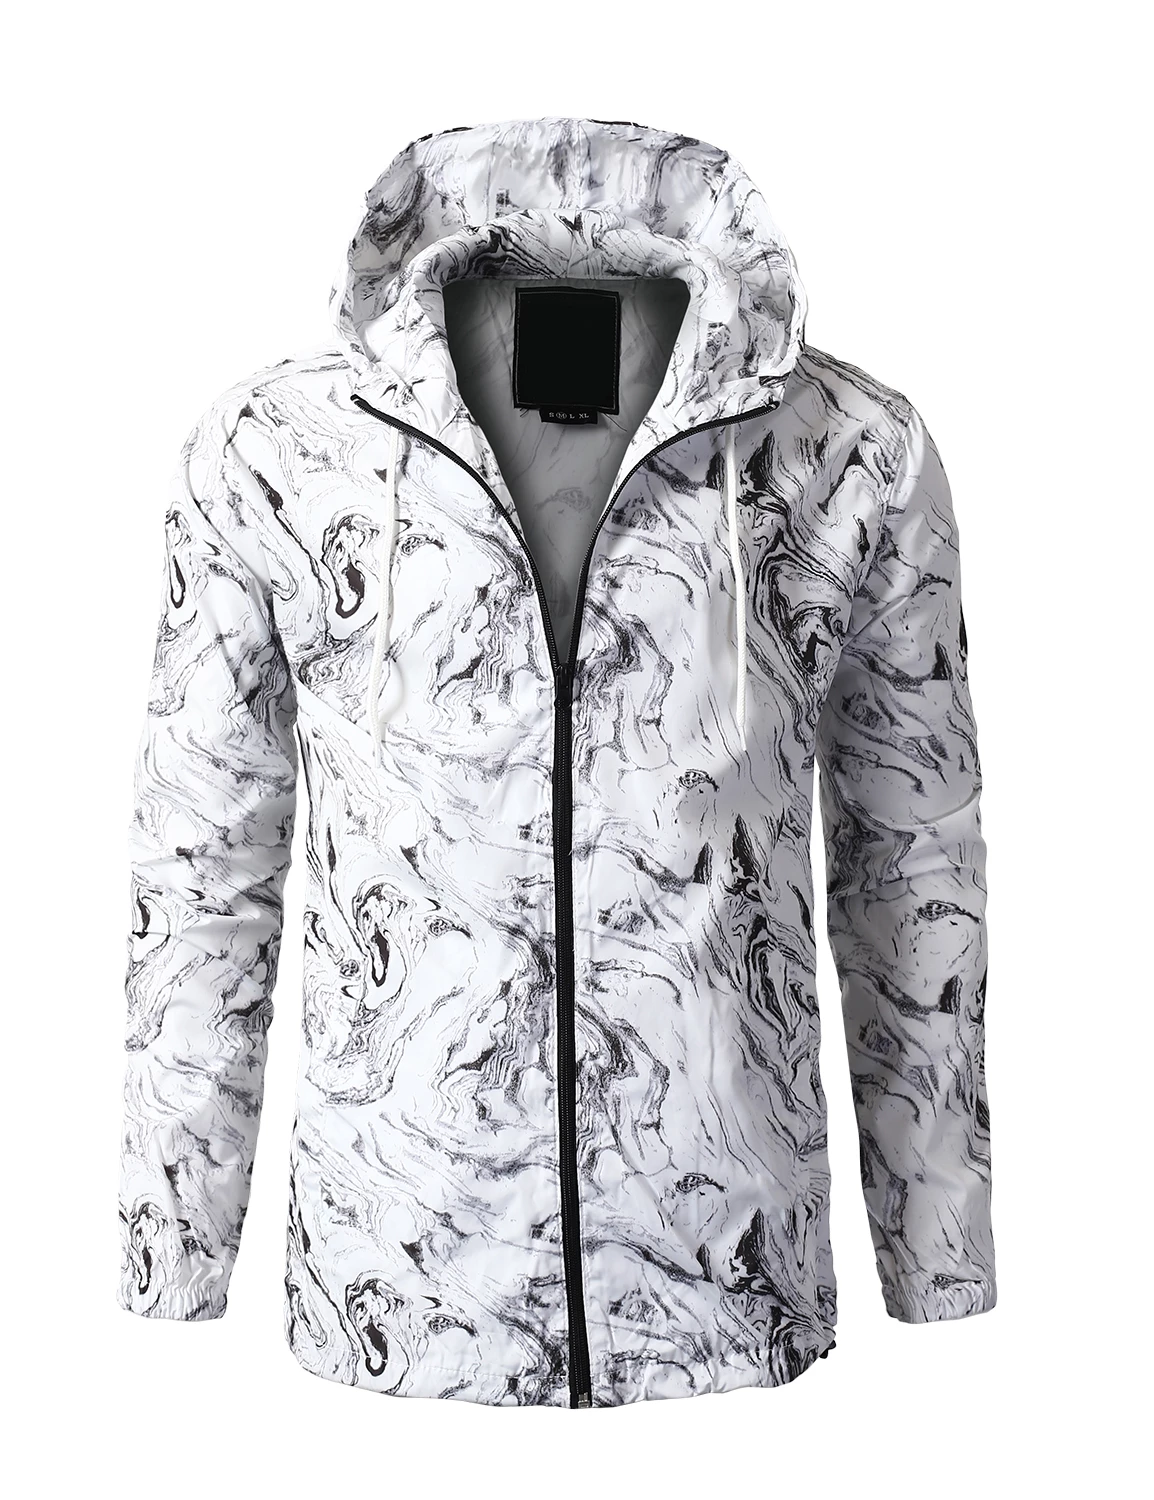 Men's White Camo Hooded Lightweight Water-Resistant Full-Zip Up Pockets Windbreaker